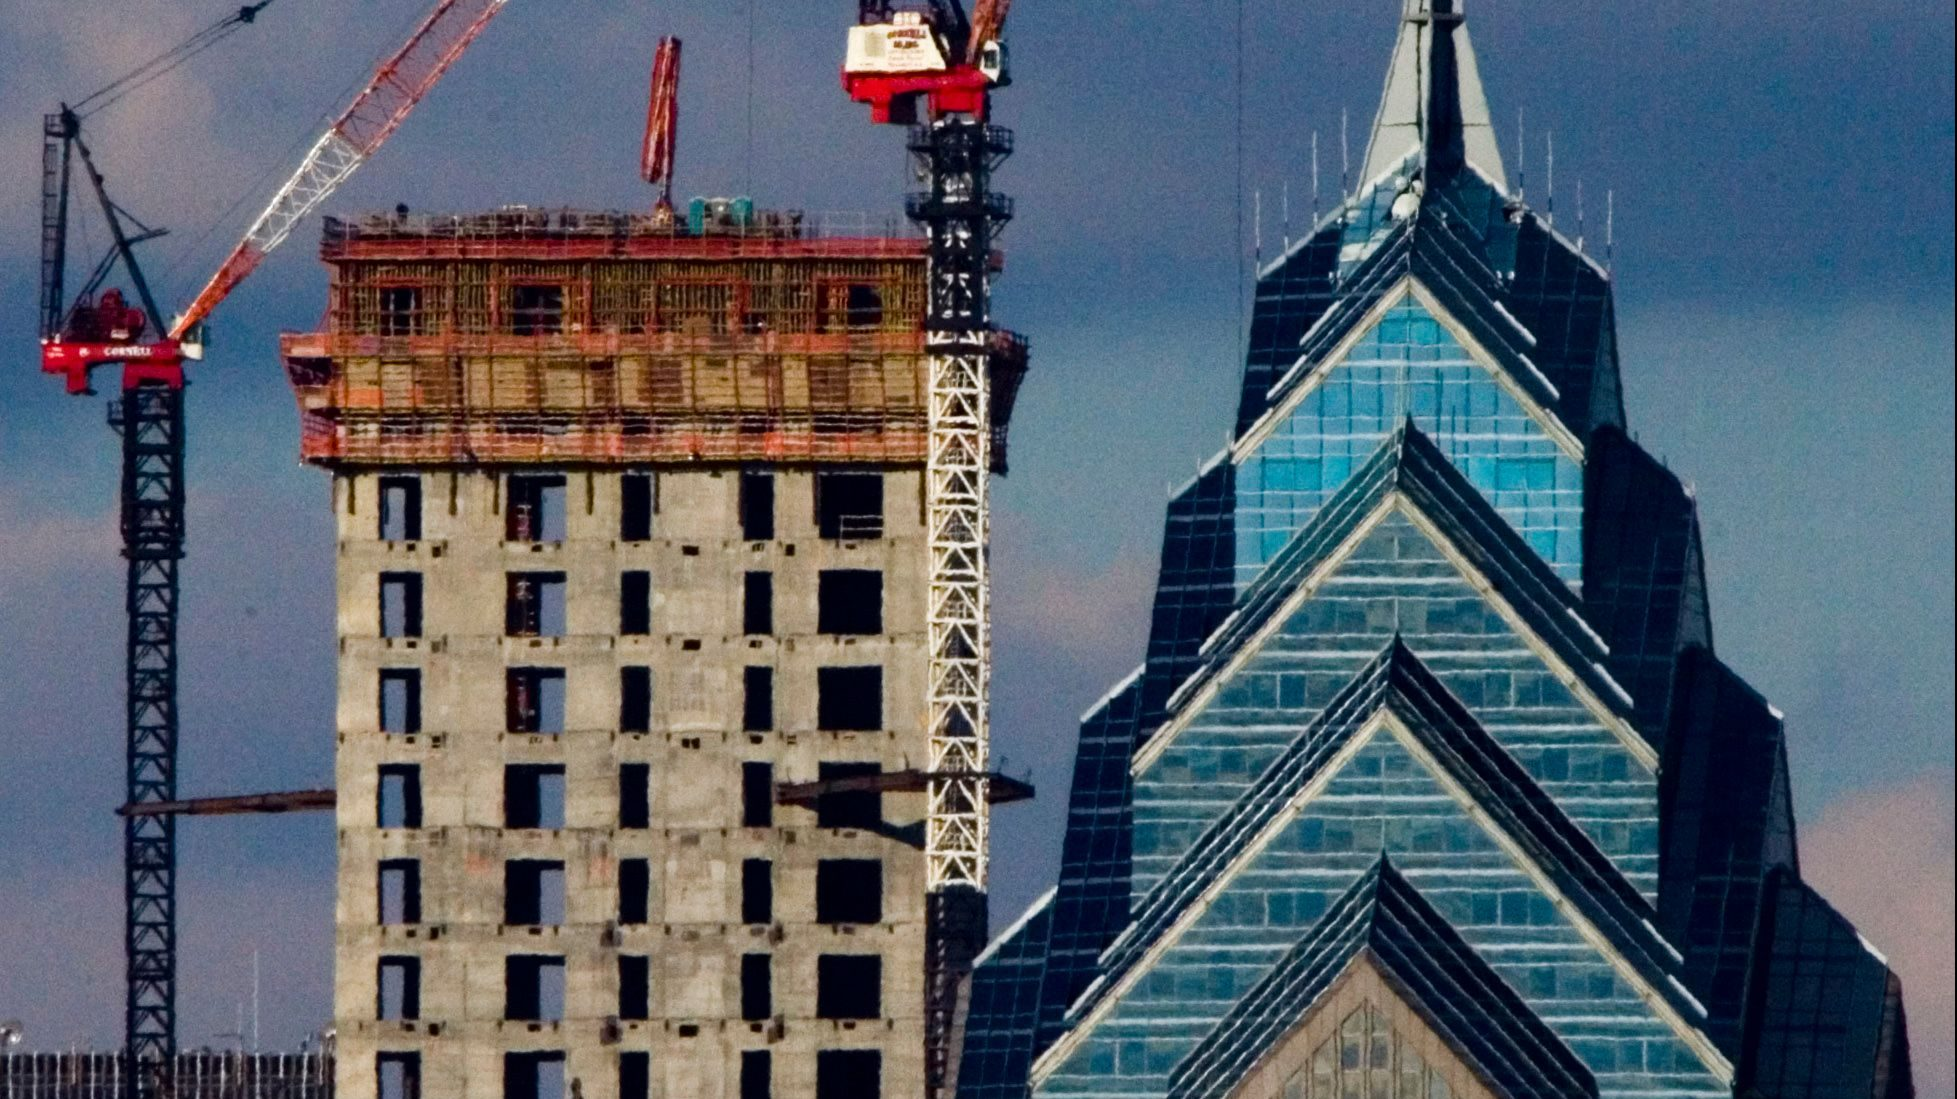 The concrete core of the rising Comcast Center skyscraper, left, is shown with One Liberty Place, in Philadelphia, Tuesday, Jan. 9, 2007.  Skyscraper developers are increasingly installing safety features in light of the Sept. 11 attacks and it's not just happening in New York City but places such as Miami, San Francisco and Philadelphia.